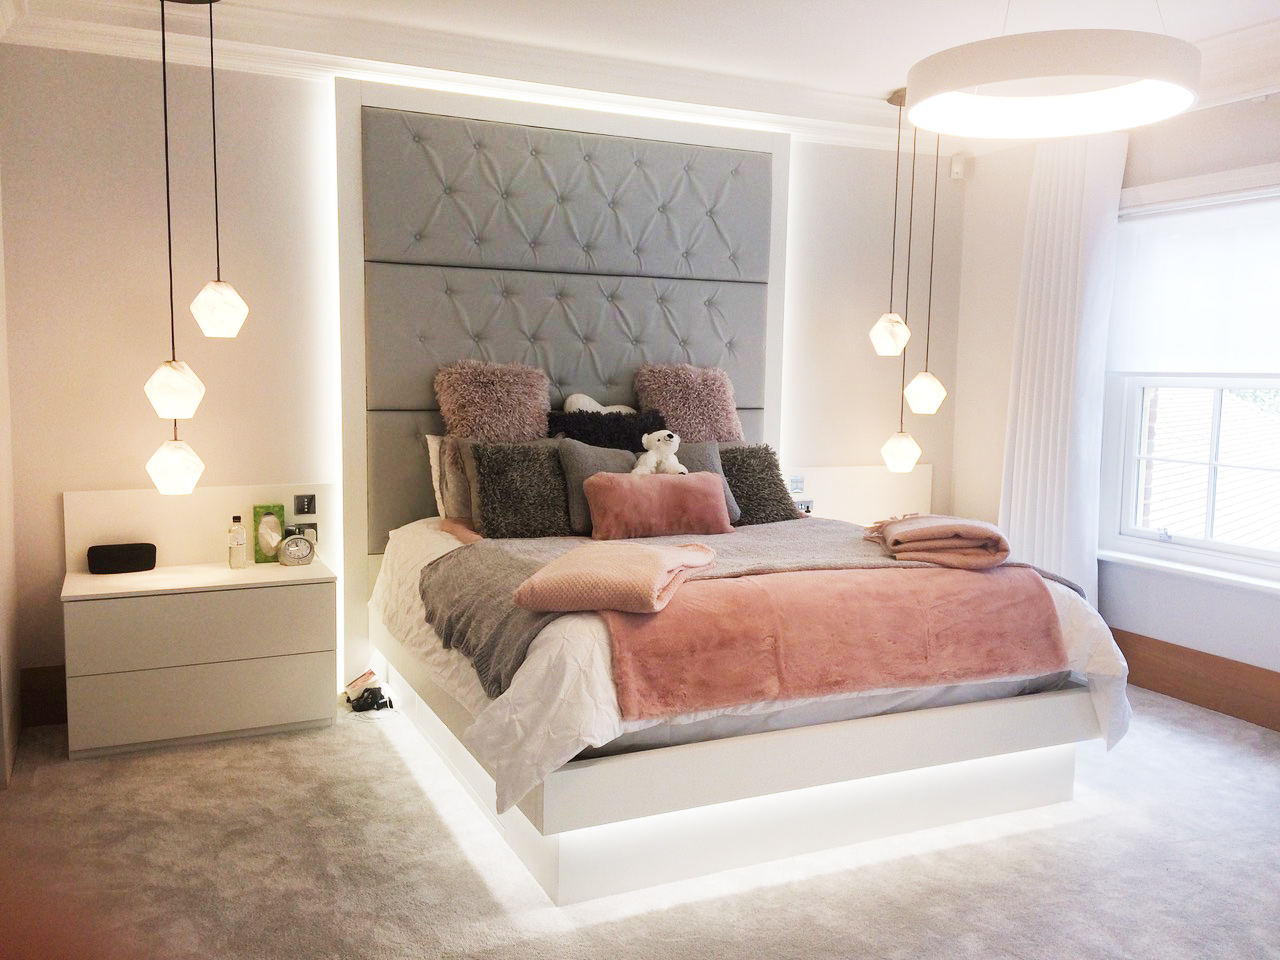 Beds And Headboards Lamco Design